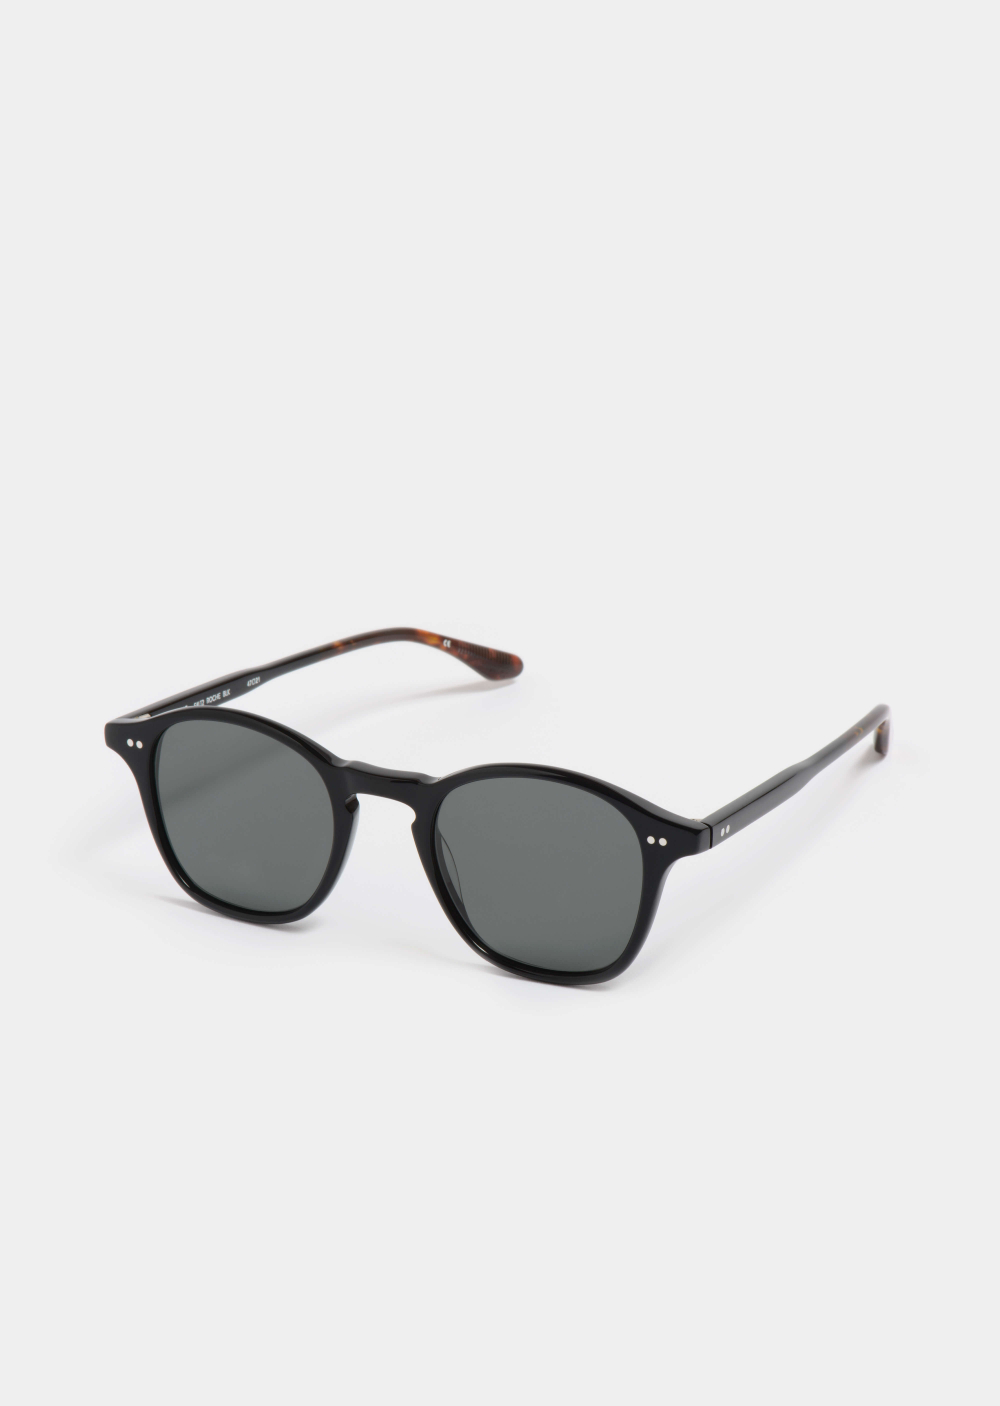 PETER AND MAY -  - LT2 Roche RX black grey polarized